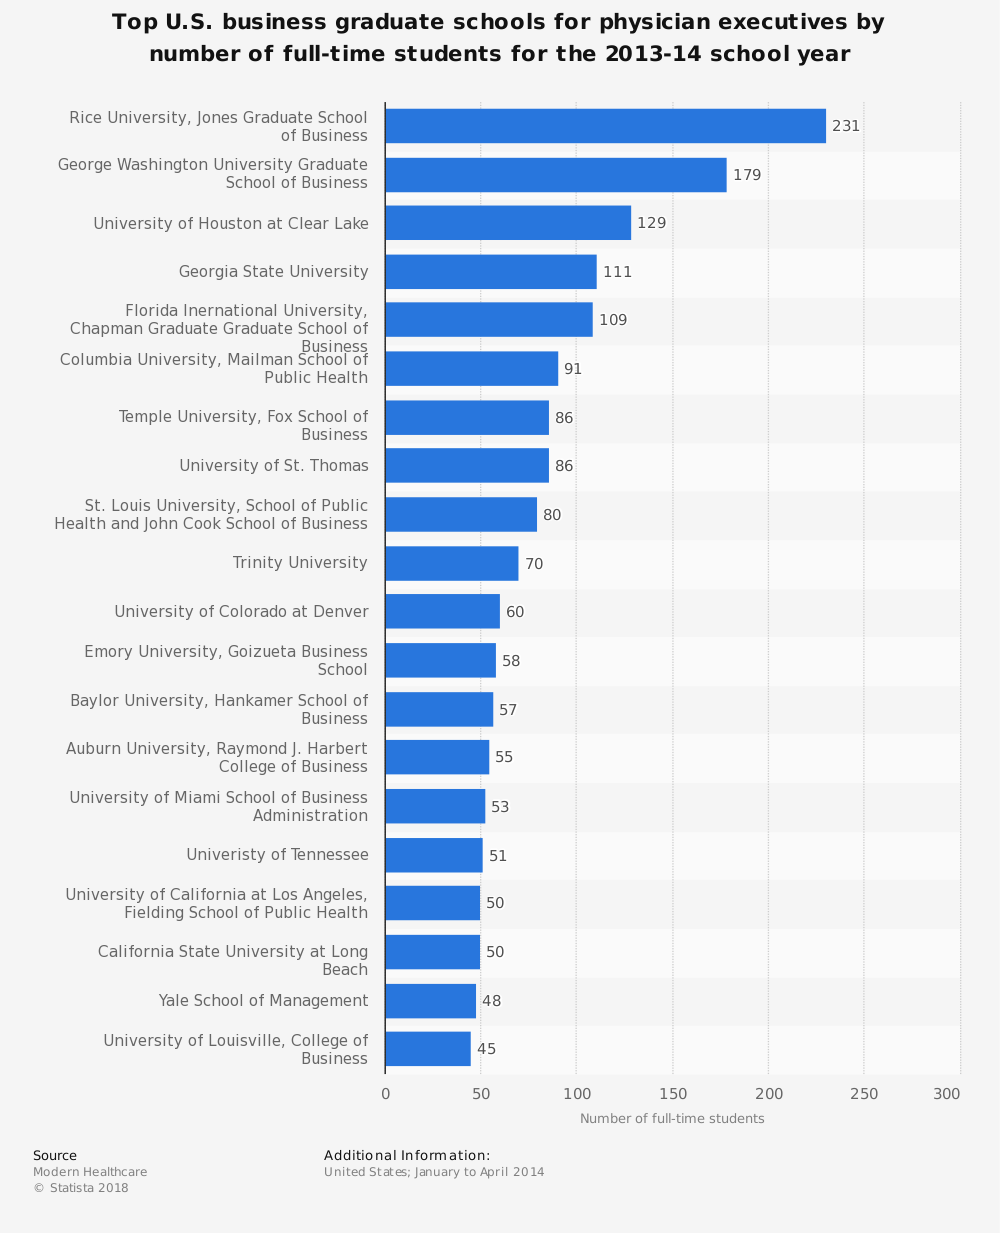 Statistic: Top U.S. business graduate schools for physician executives by number of full-time students for the 2013-14 school year | Statista